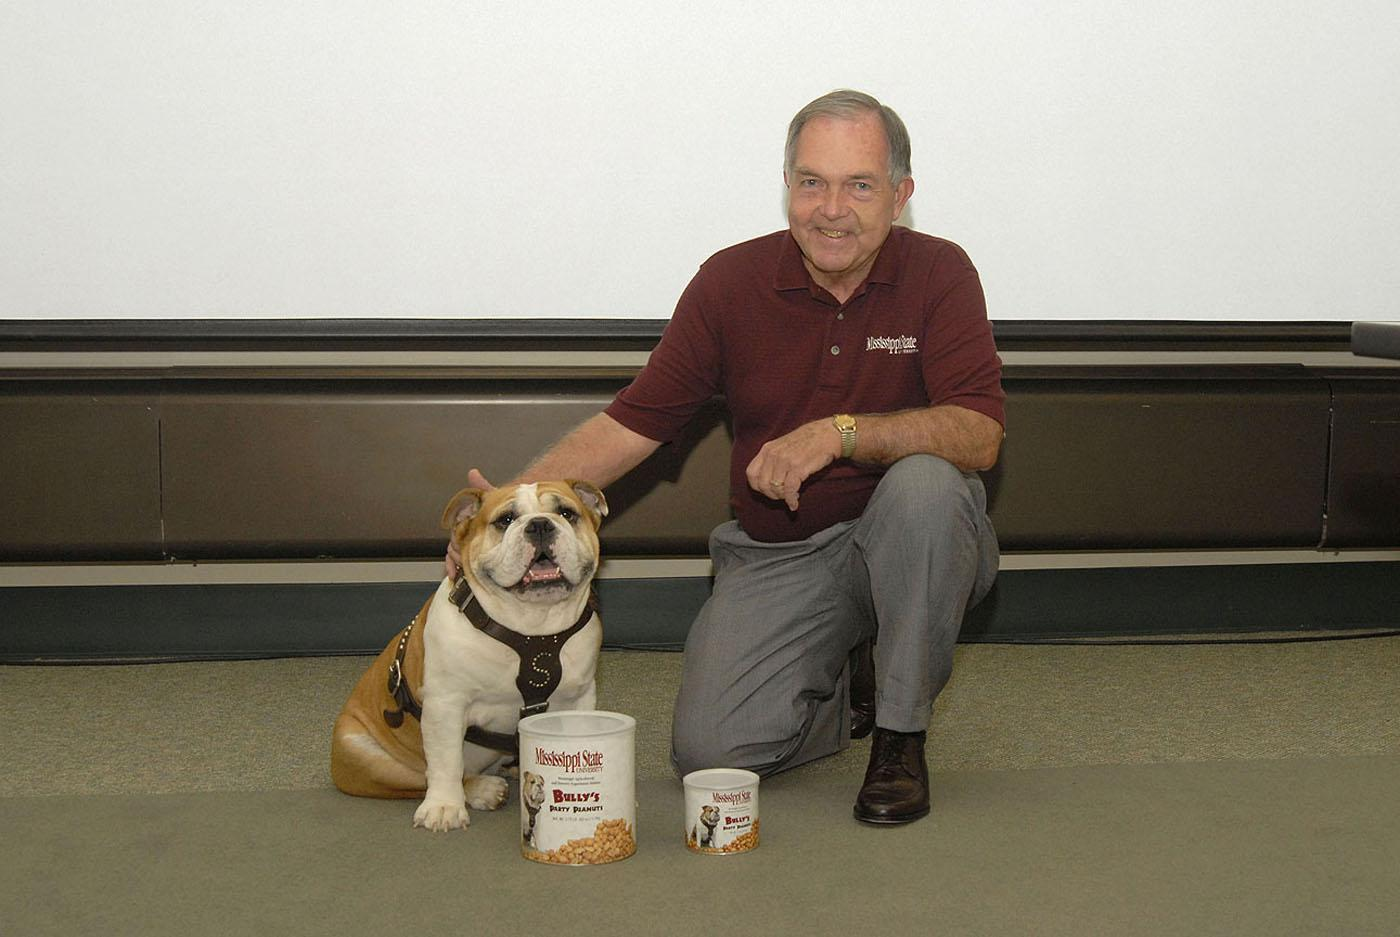 The Mississippi State University Cheese Store now sells peanuts to help promote consumption in the state. Pictured with two of the products are Bully, MSU's mascot, and Dr. Vance Watson, vice president for the Division of Agriculture, Forestry and Veterinary Medicine. Photo by Tom Thompson.